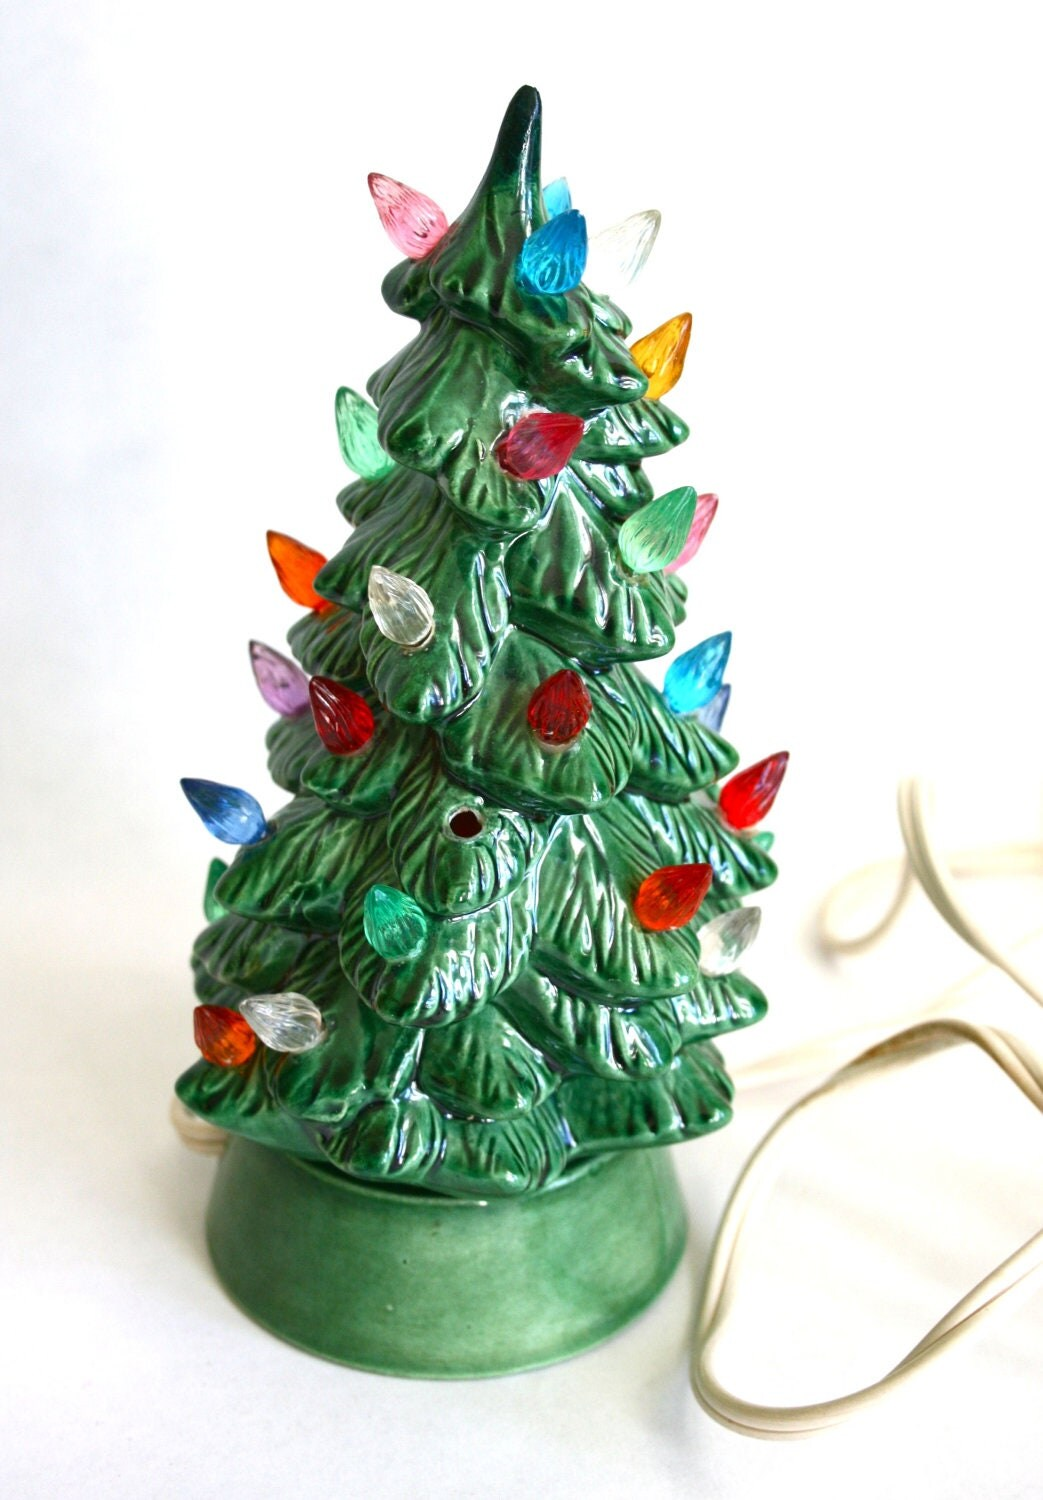 Tiny 1950s 1960s Light Up Ceramic Christmas Tree By